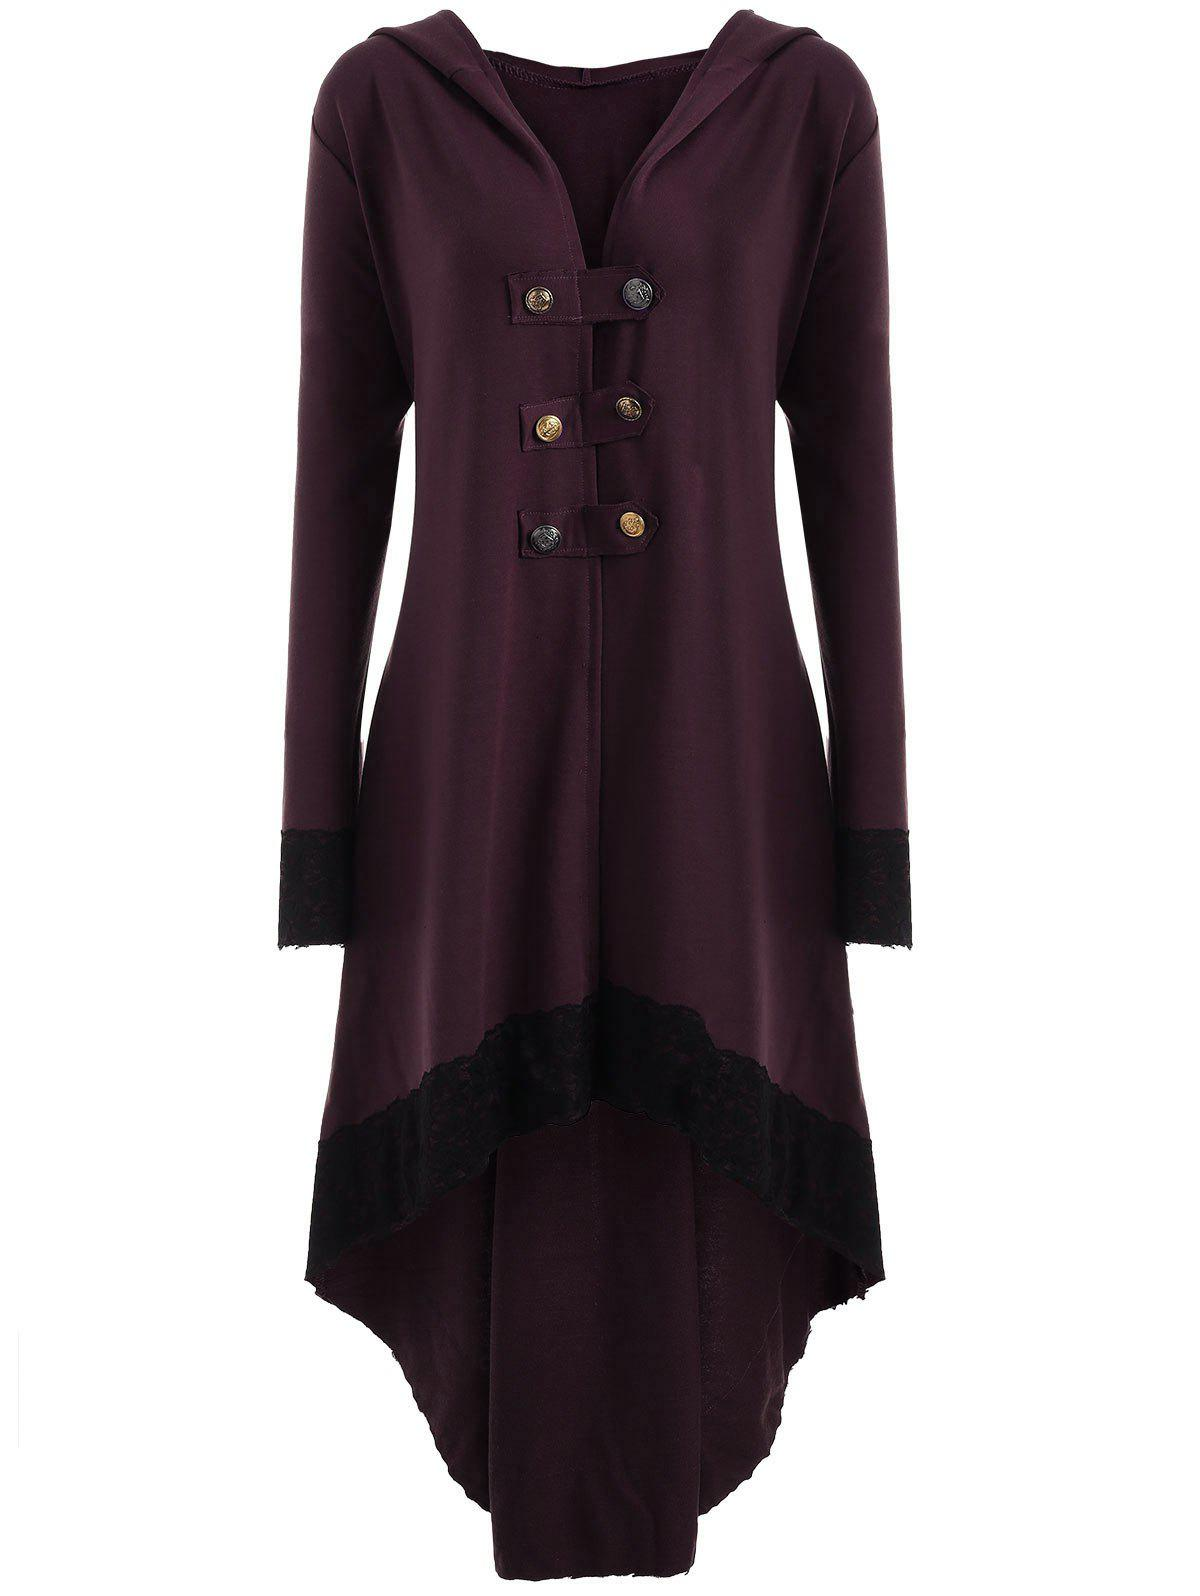 Lace-up Plus Size Hooded High Low Coat - WINE RED XL